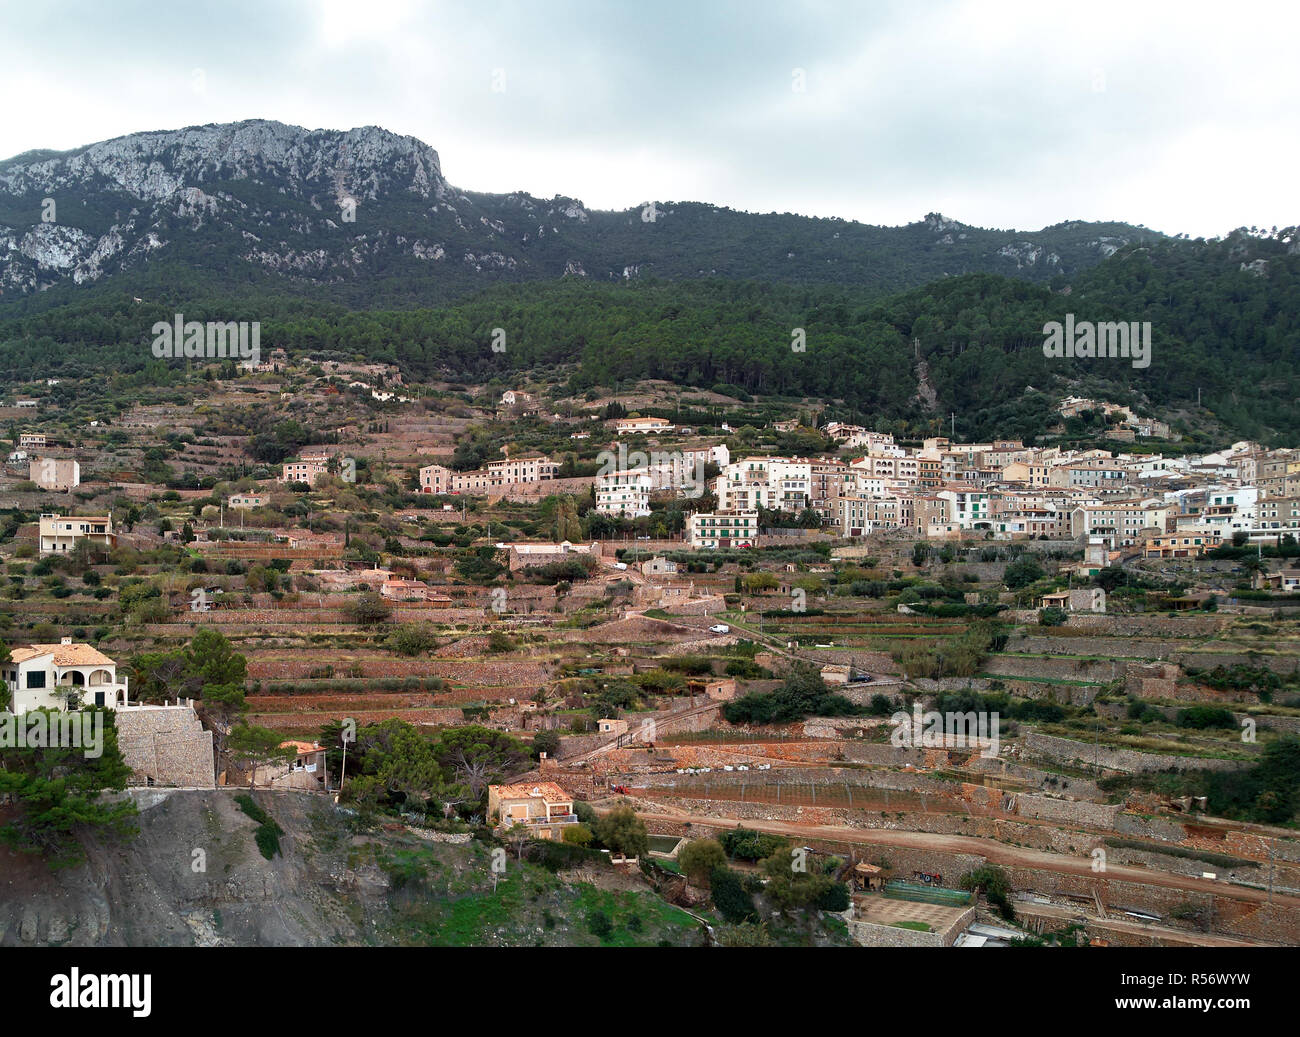 Aerial drone view of small hillside Banyalbufar town on west coast of Mallorca. Surrounded by Tramuntana mountain range. Spain - Stock Image